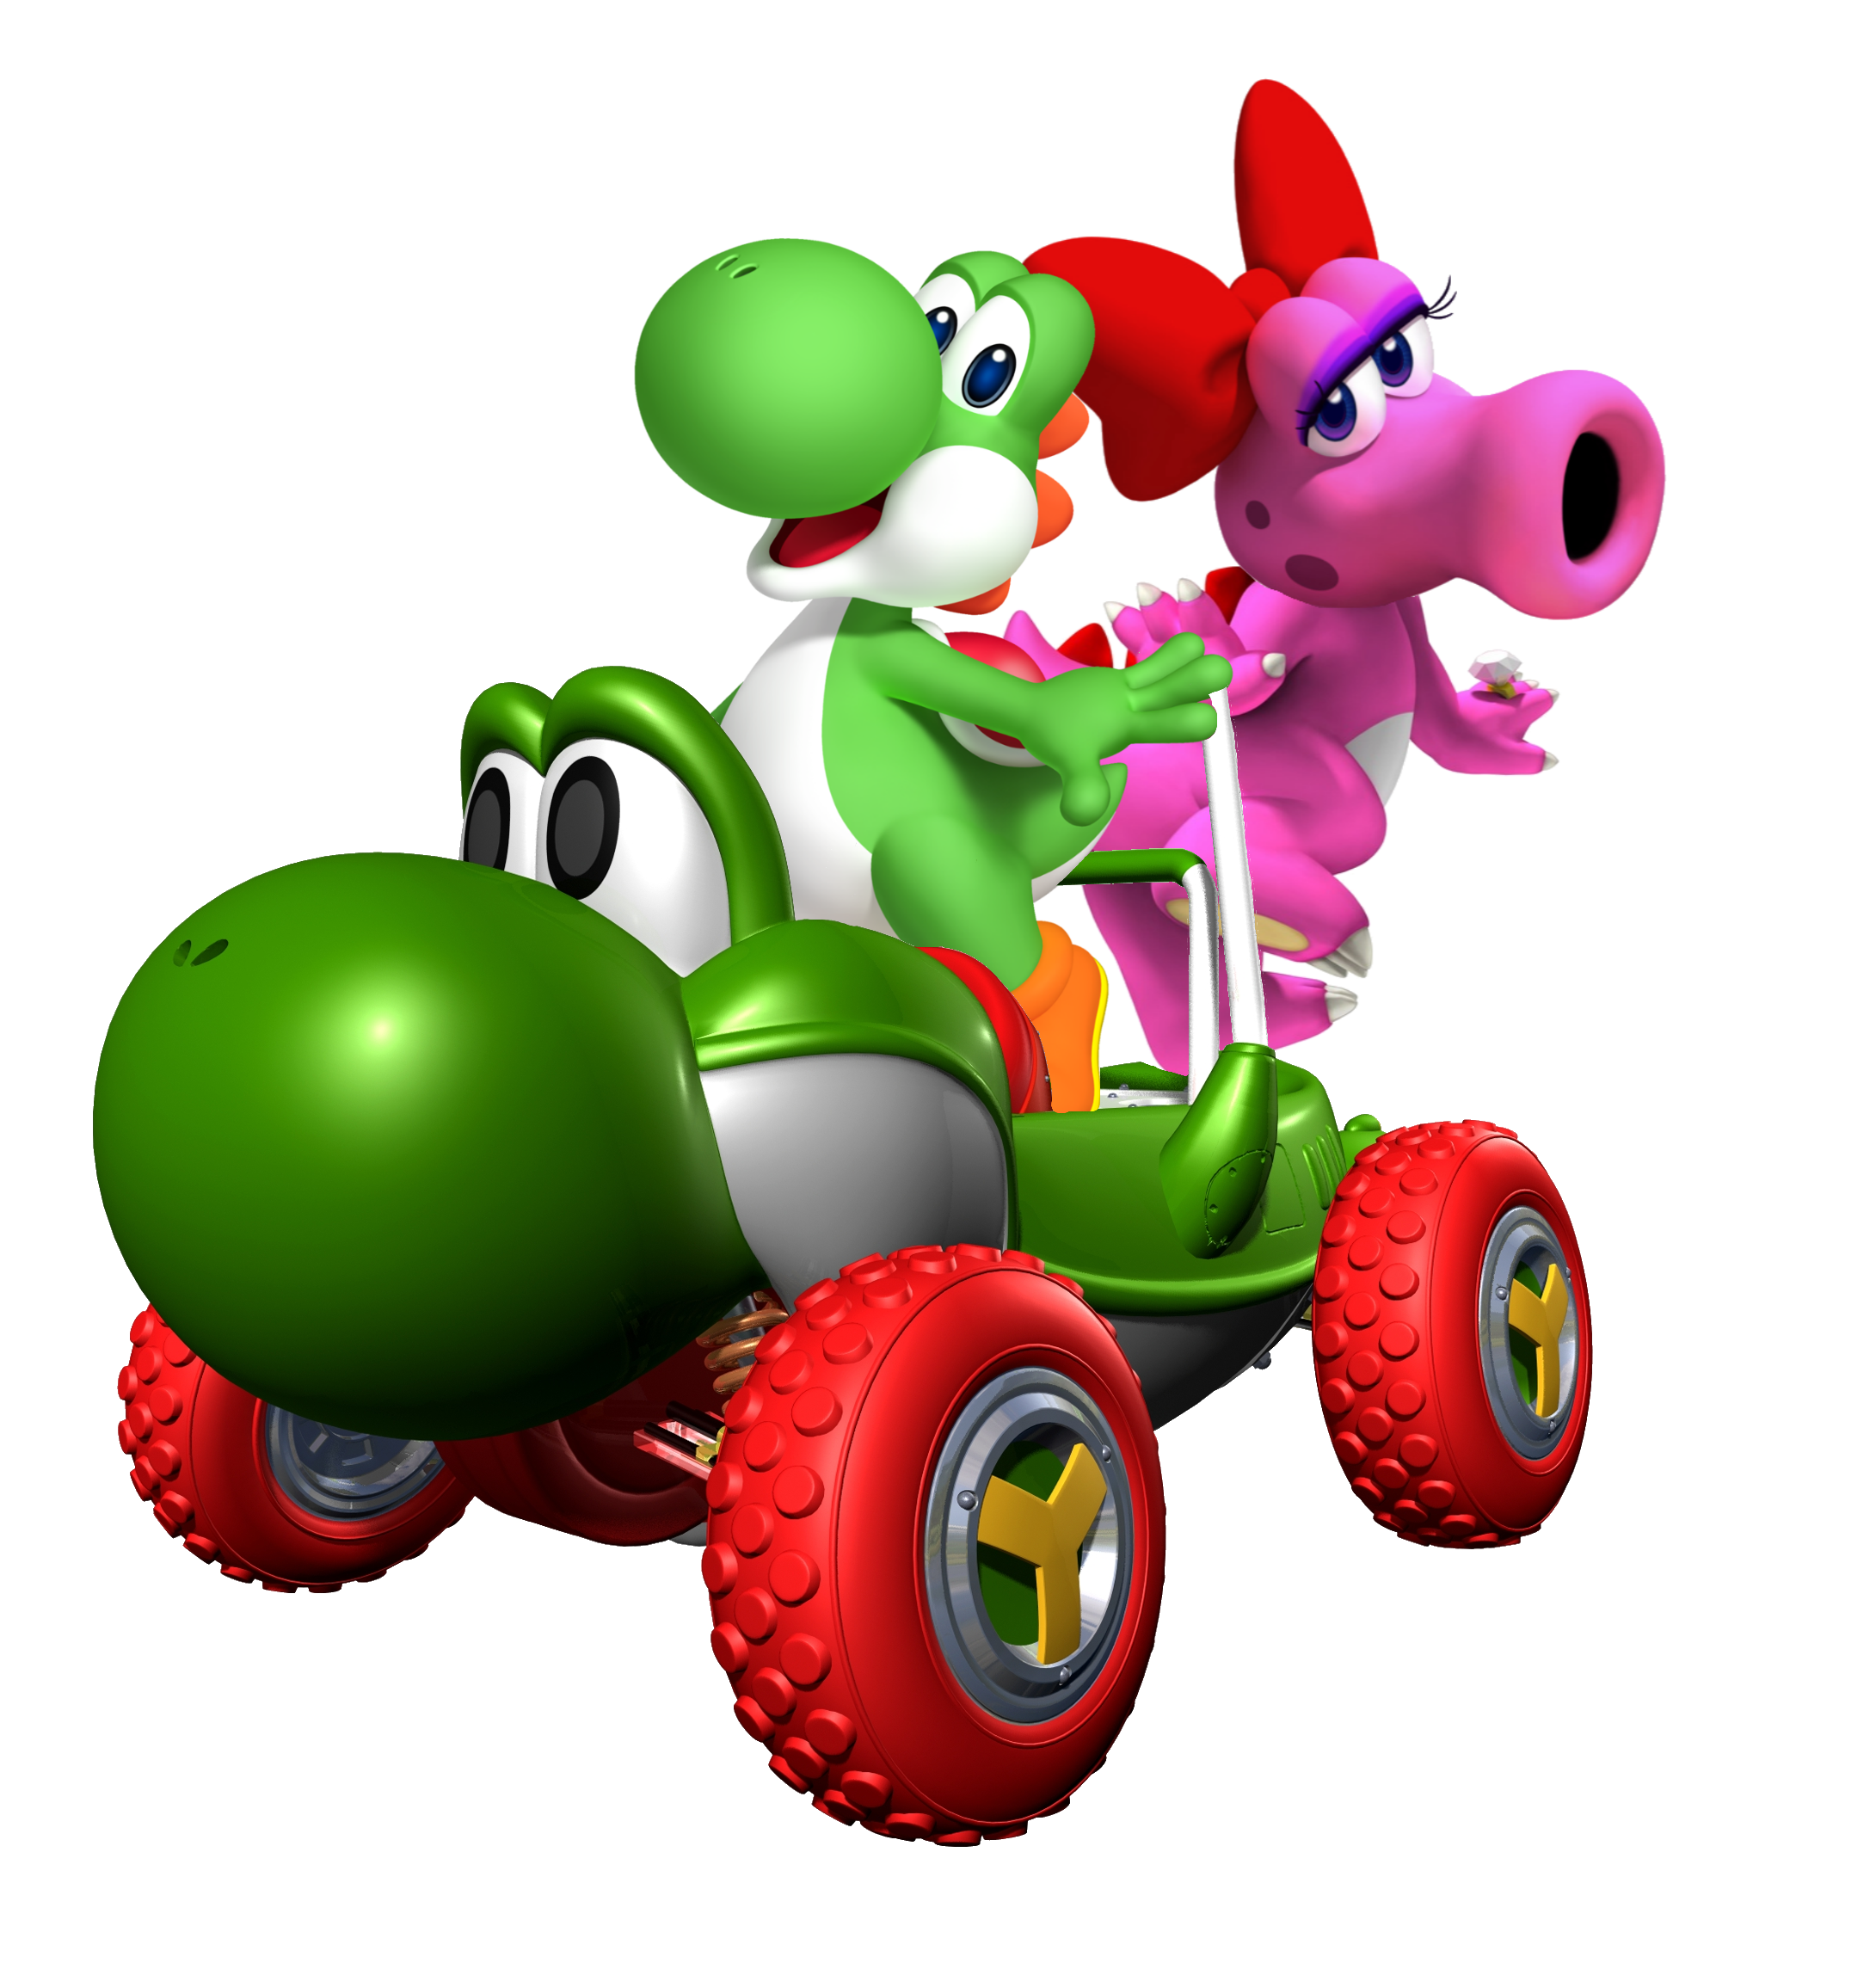 Mario clipart old Downloa Clipart for Kart Printable